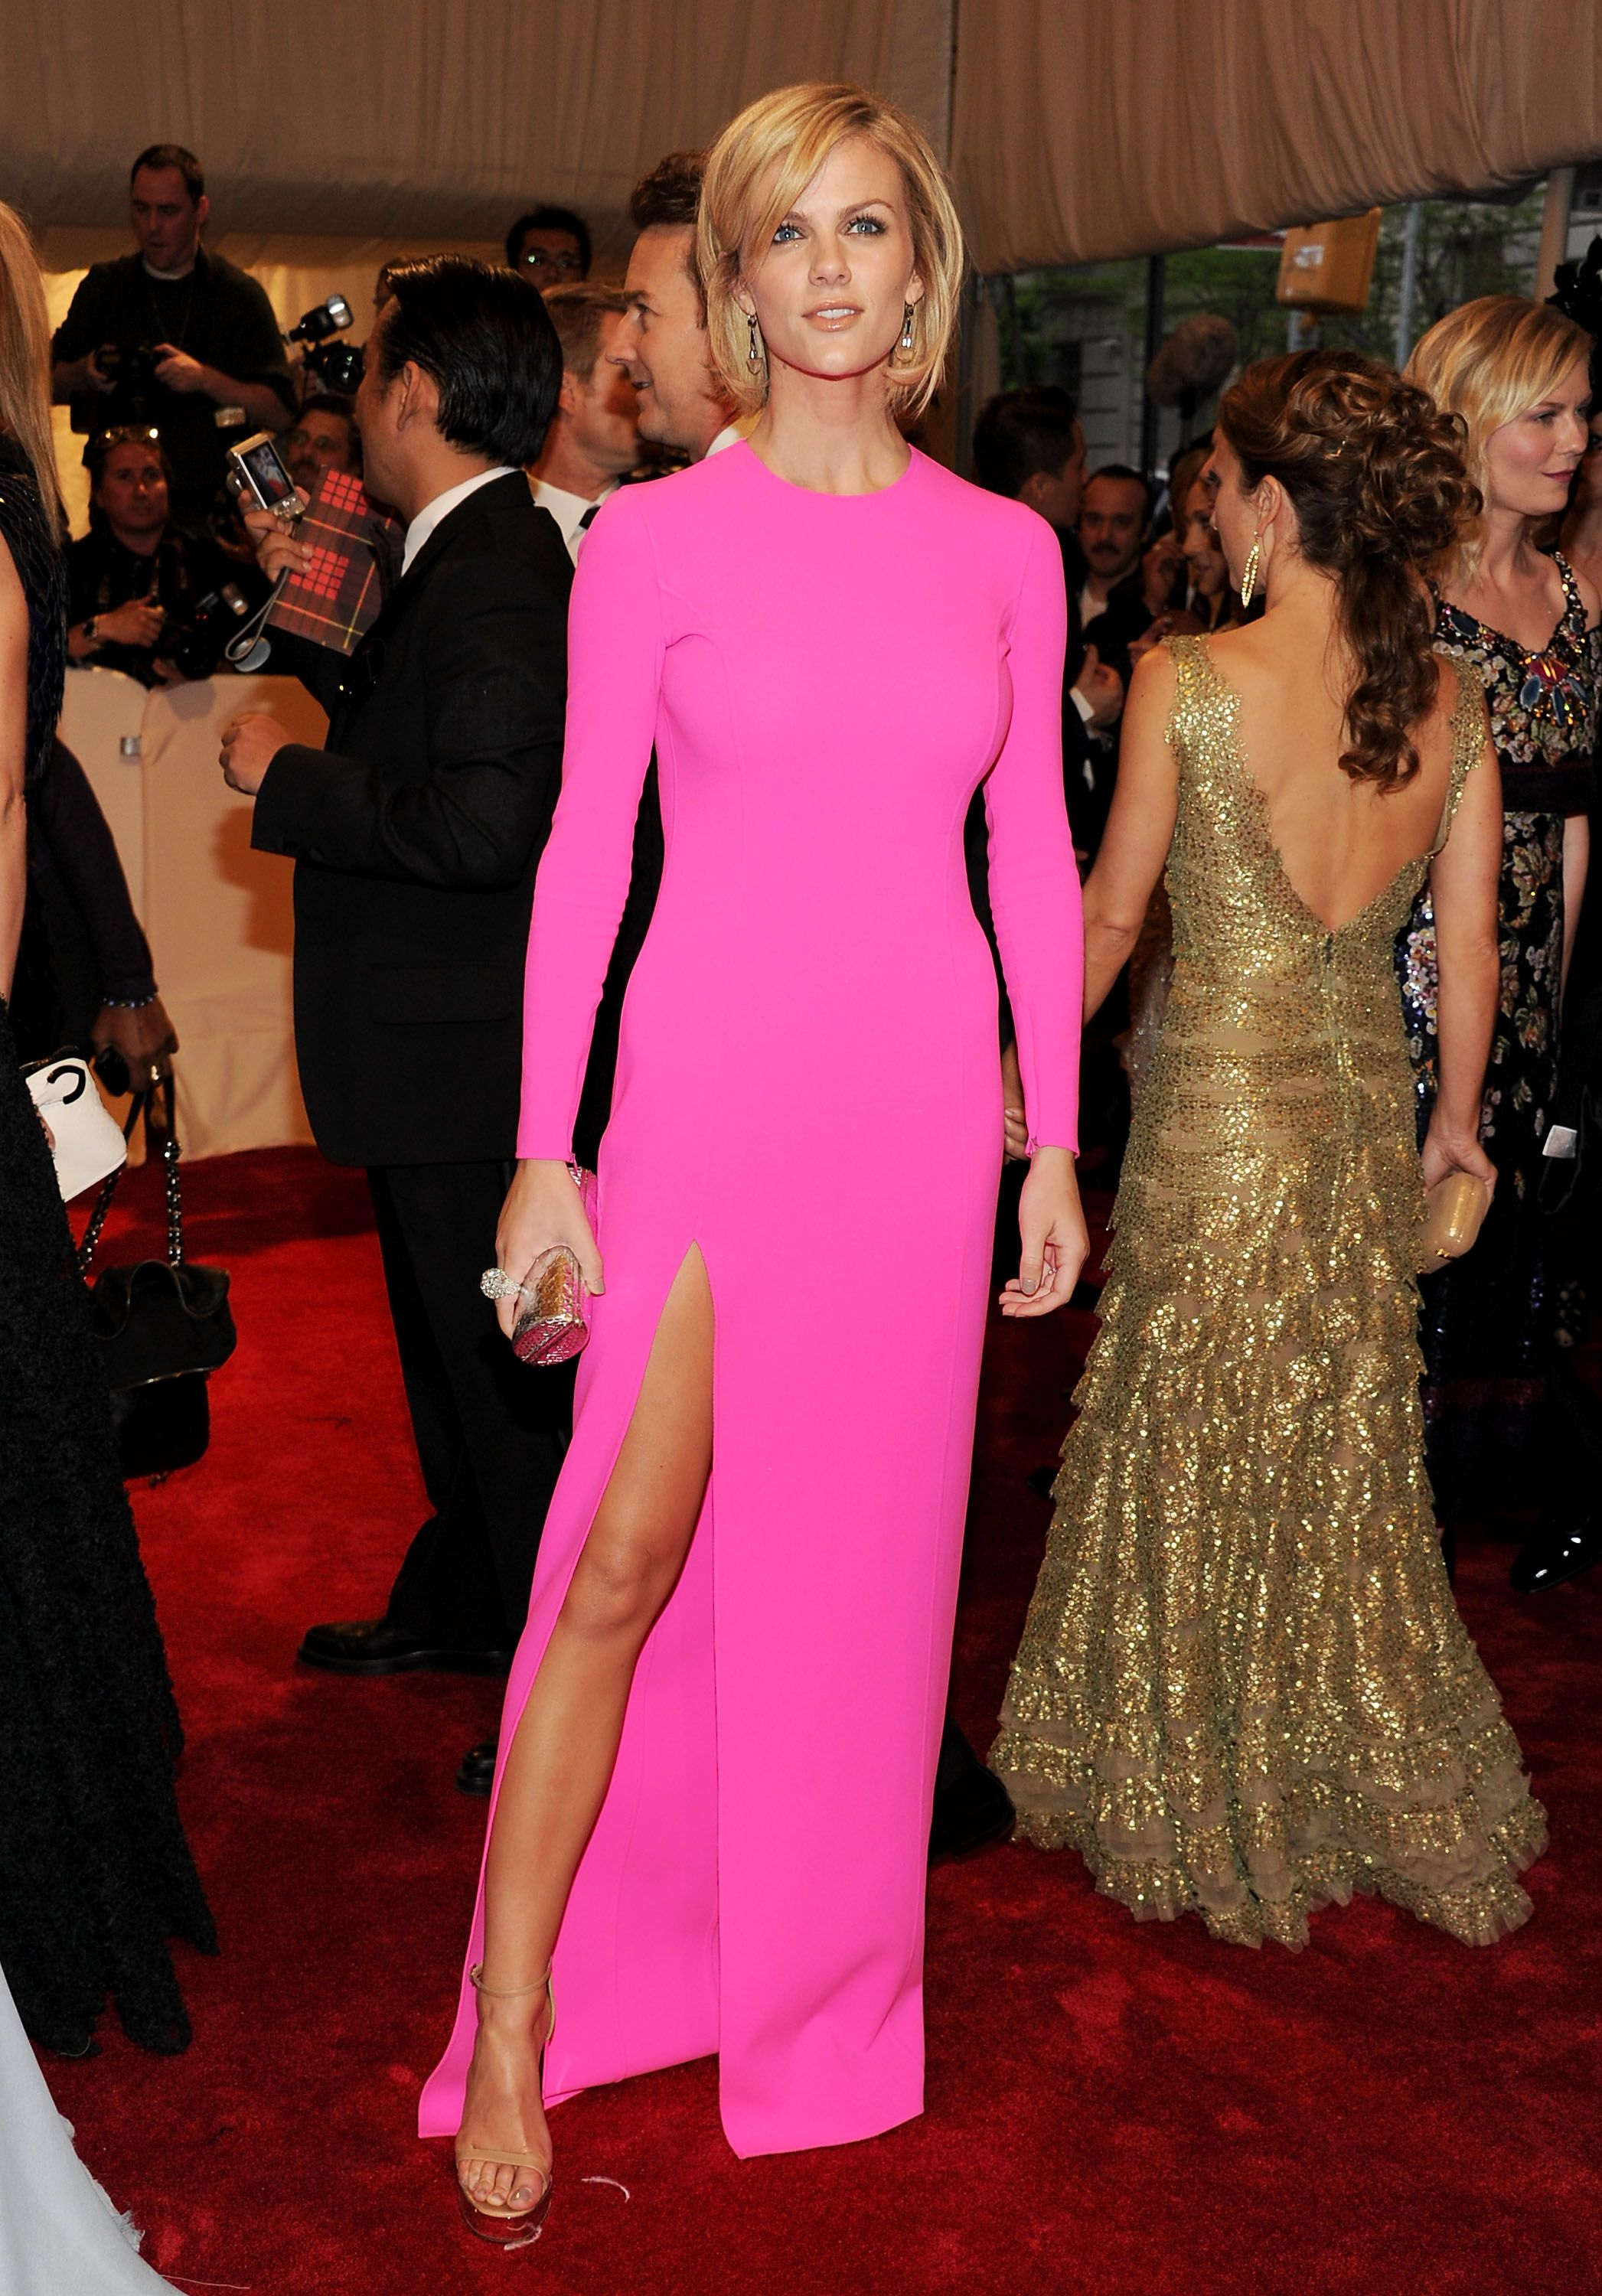 Brooklyn Decker wears Michael Kors at the 2011 Met Gala! | toofab ...